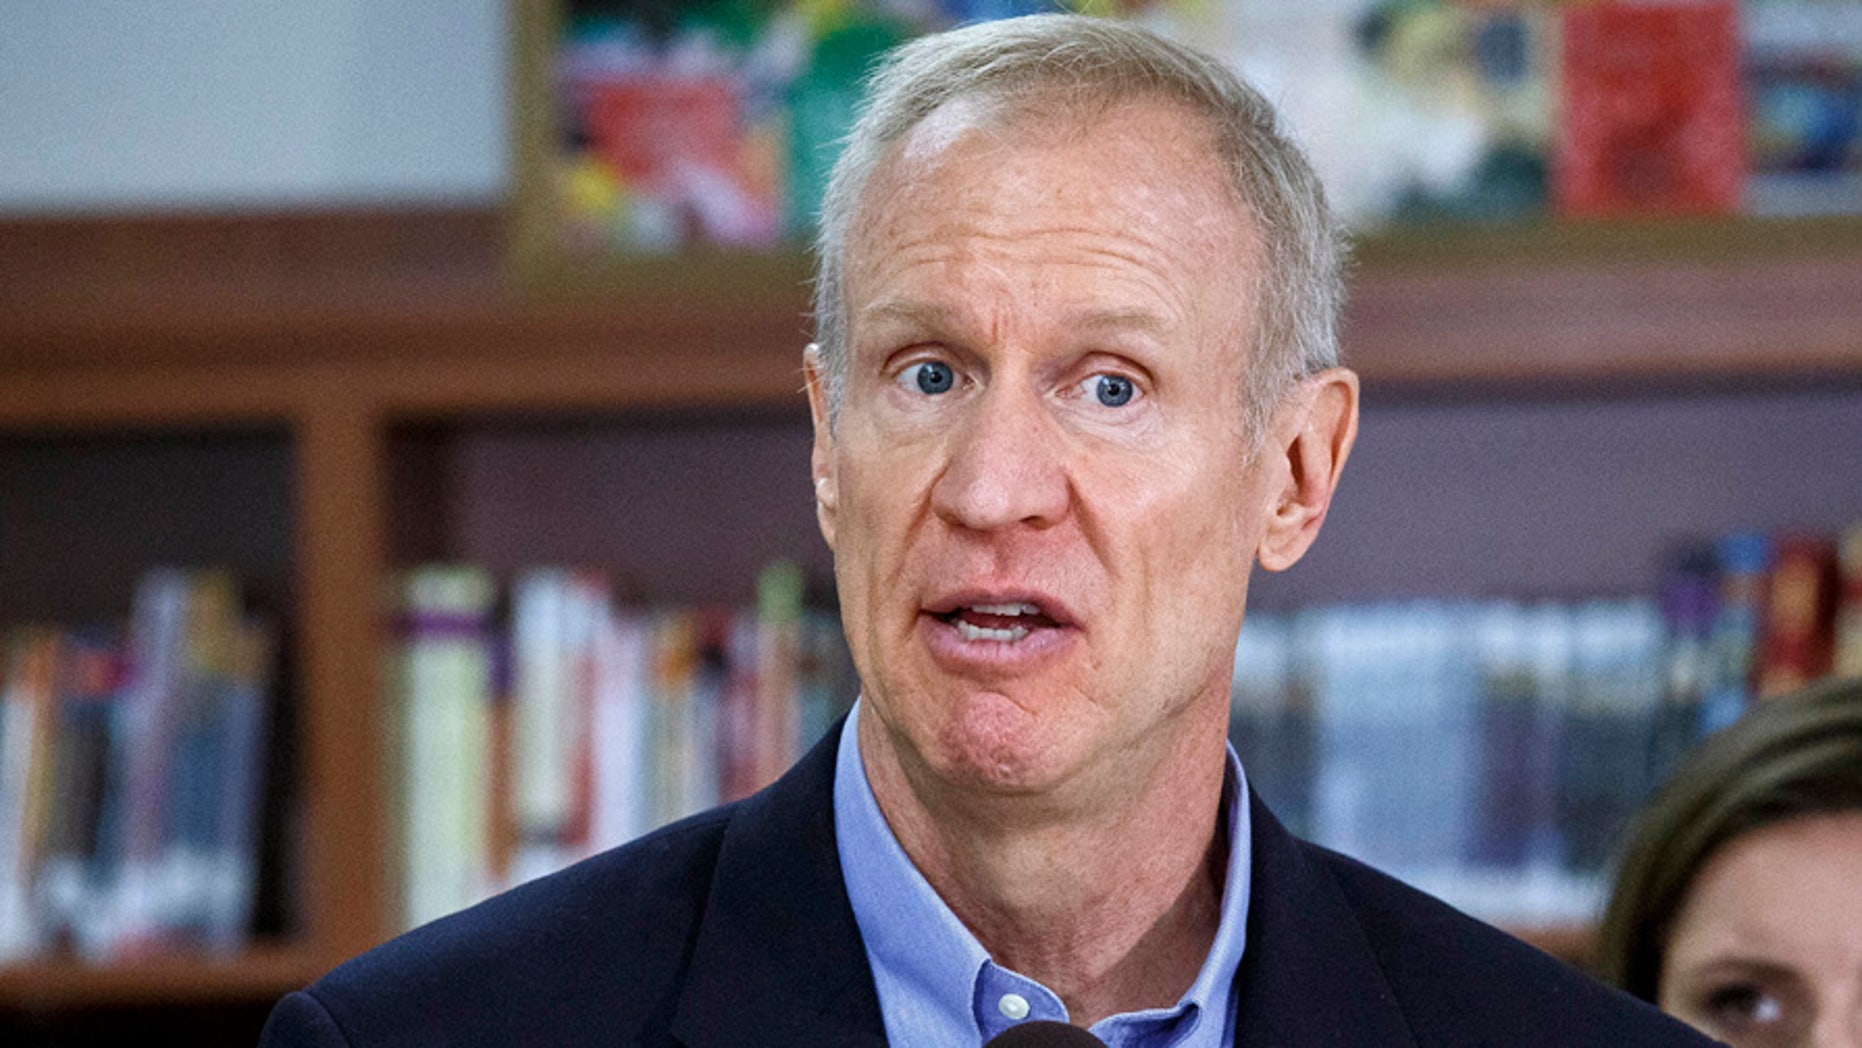 Illinois Gov. Bruce Rauner, shown in this Aug. 30, 2017 file photo, is facing a backlash for expanding taxpayer-funded abortions.